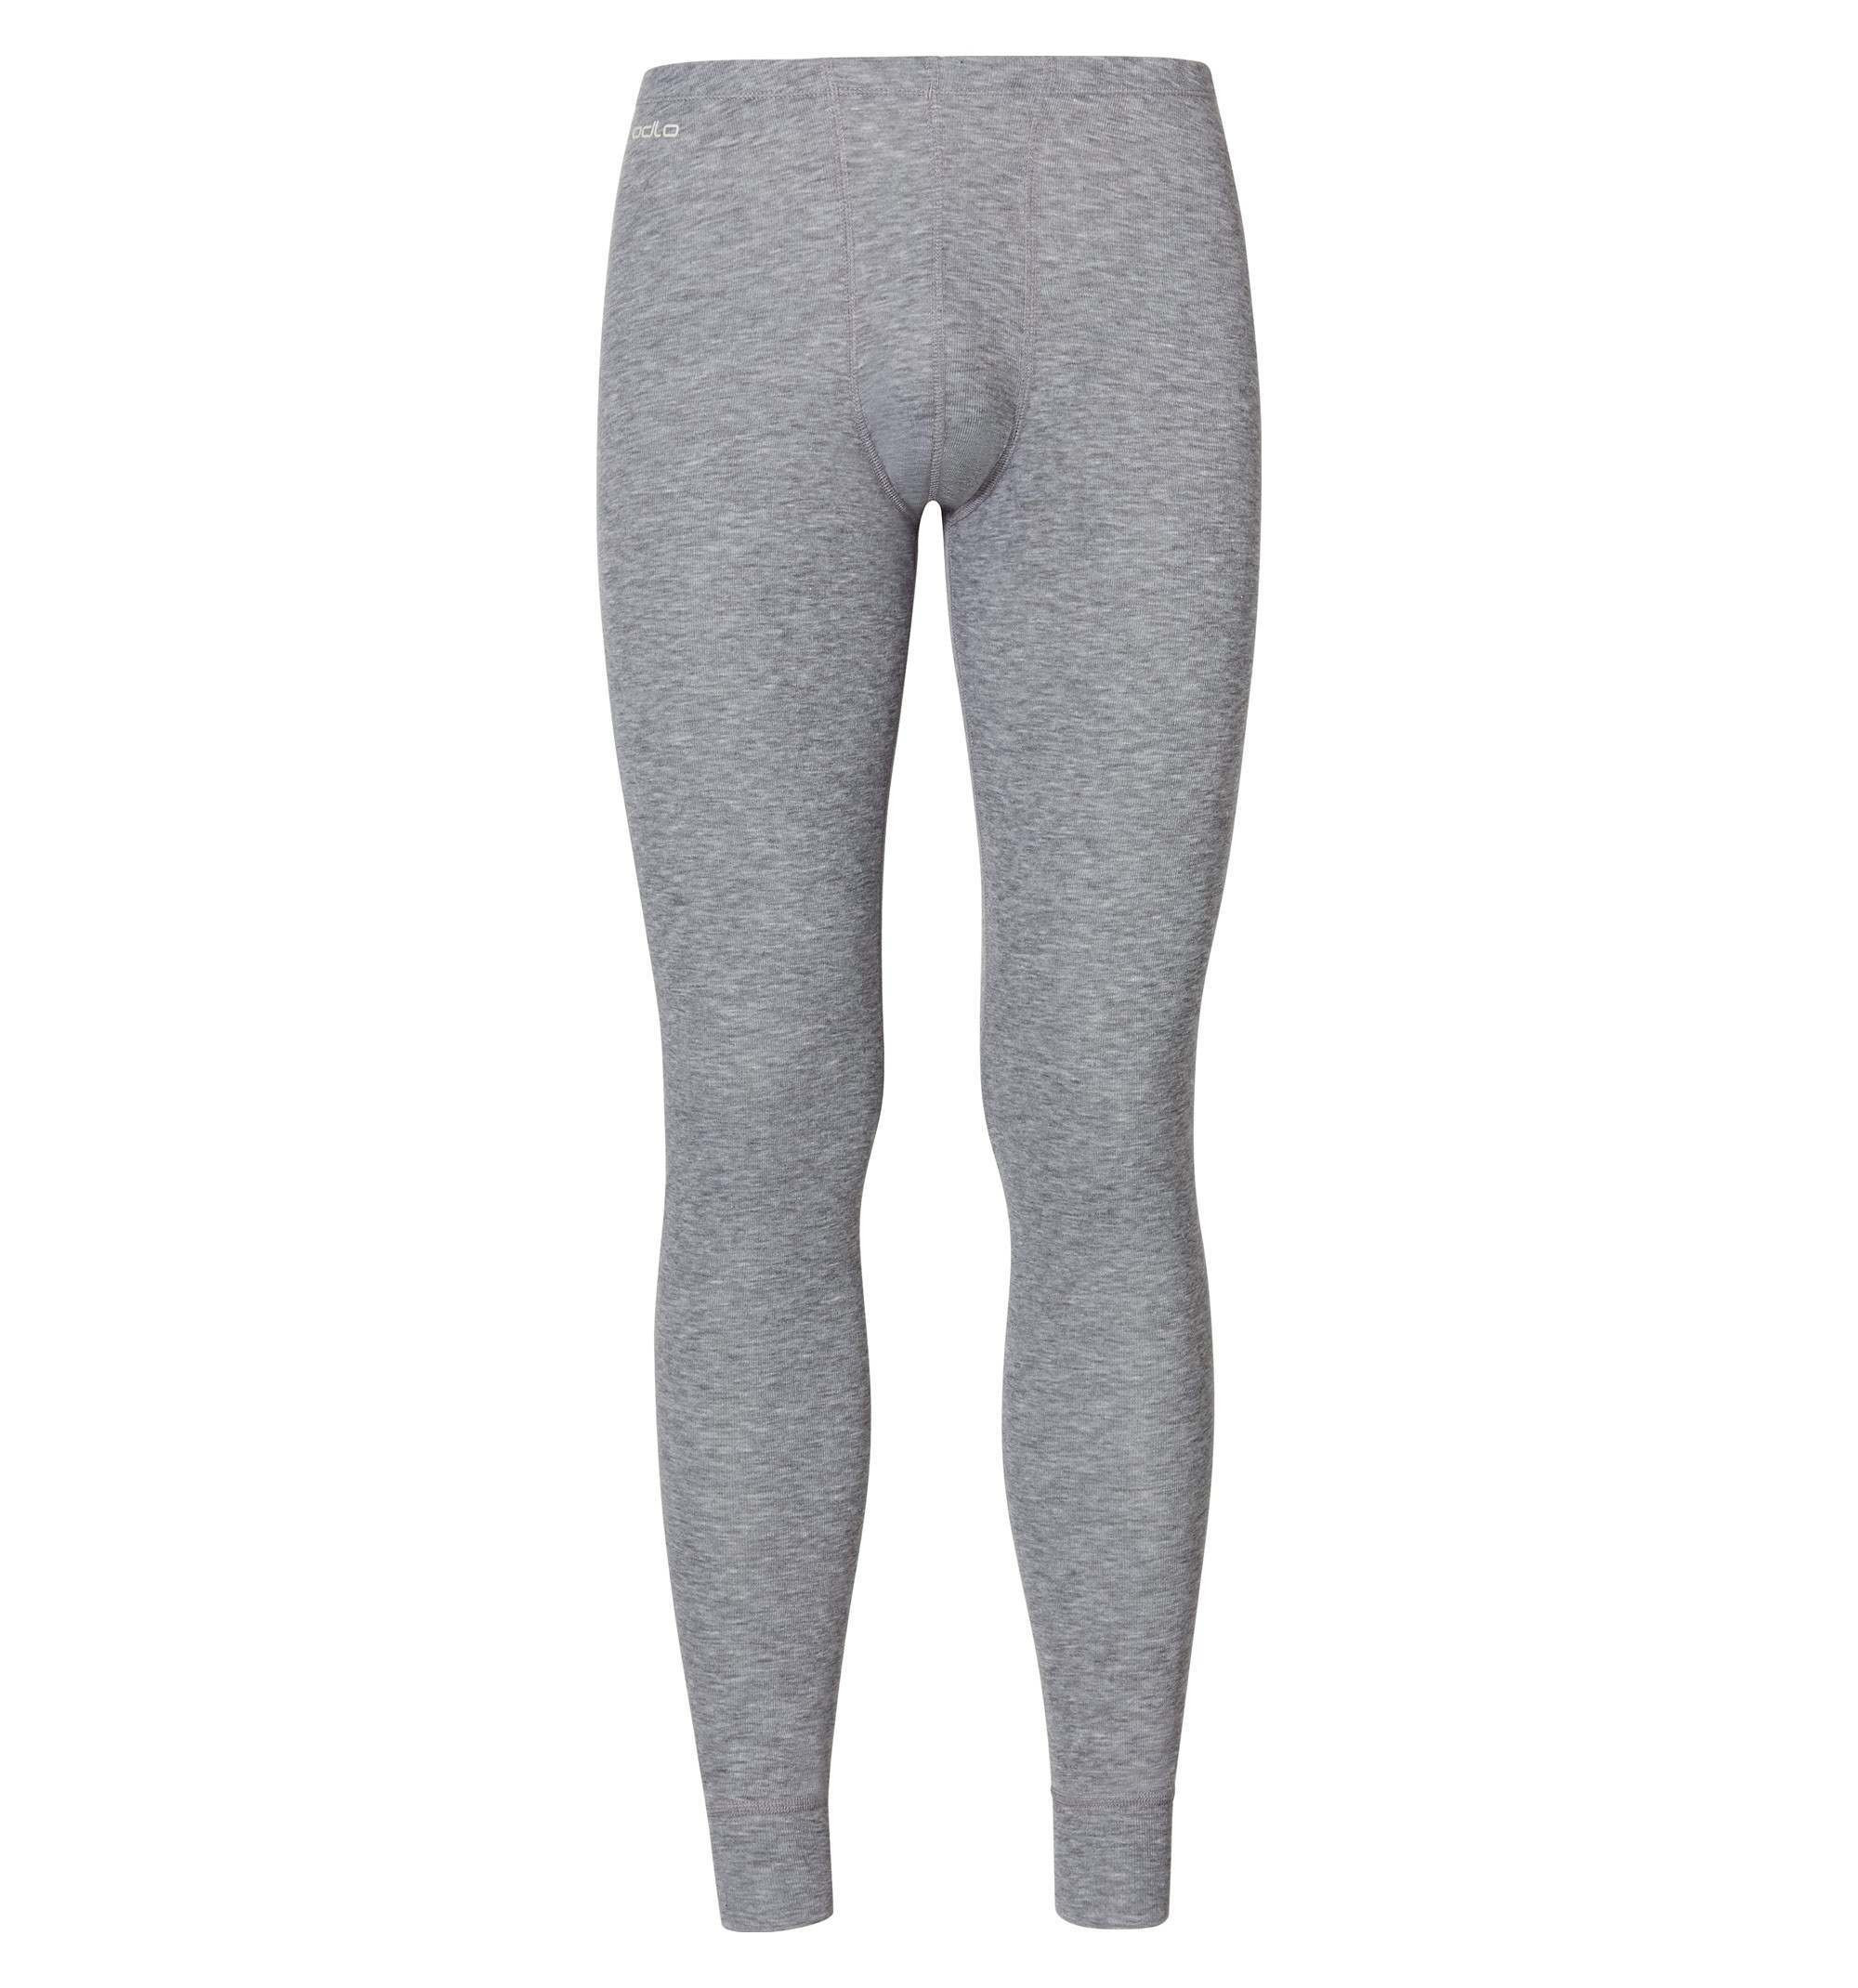 Термоштаны Odlo Warm Grey-Melange XL (152042)